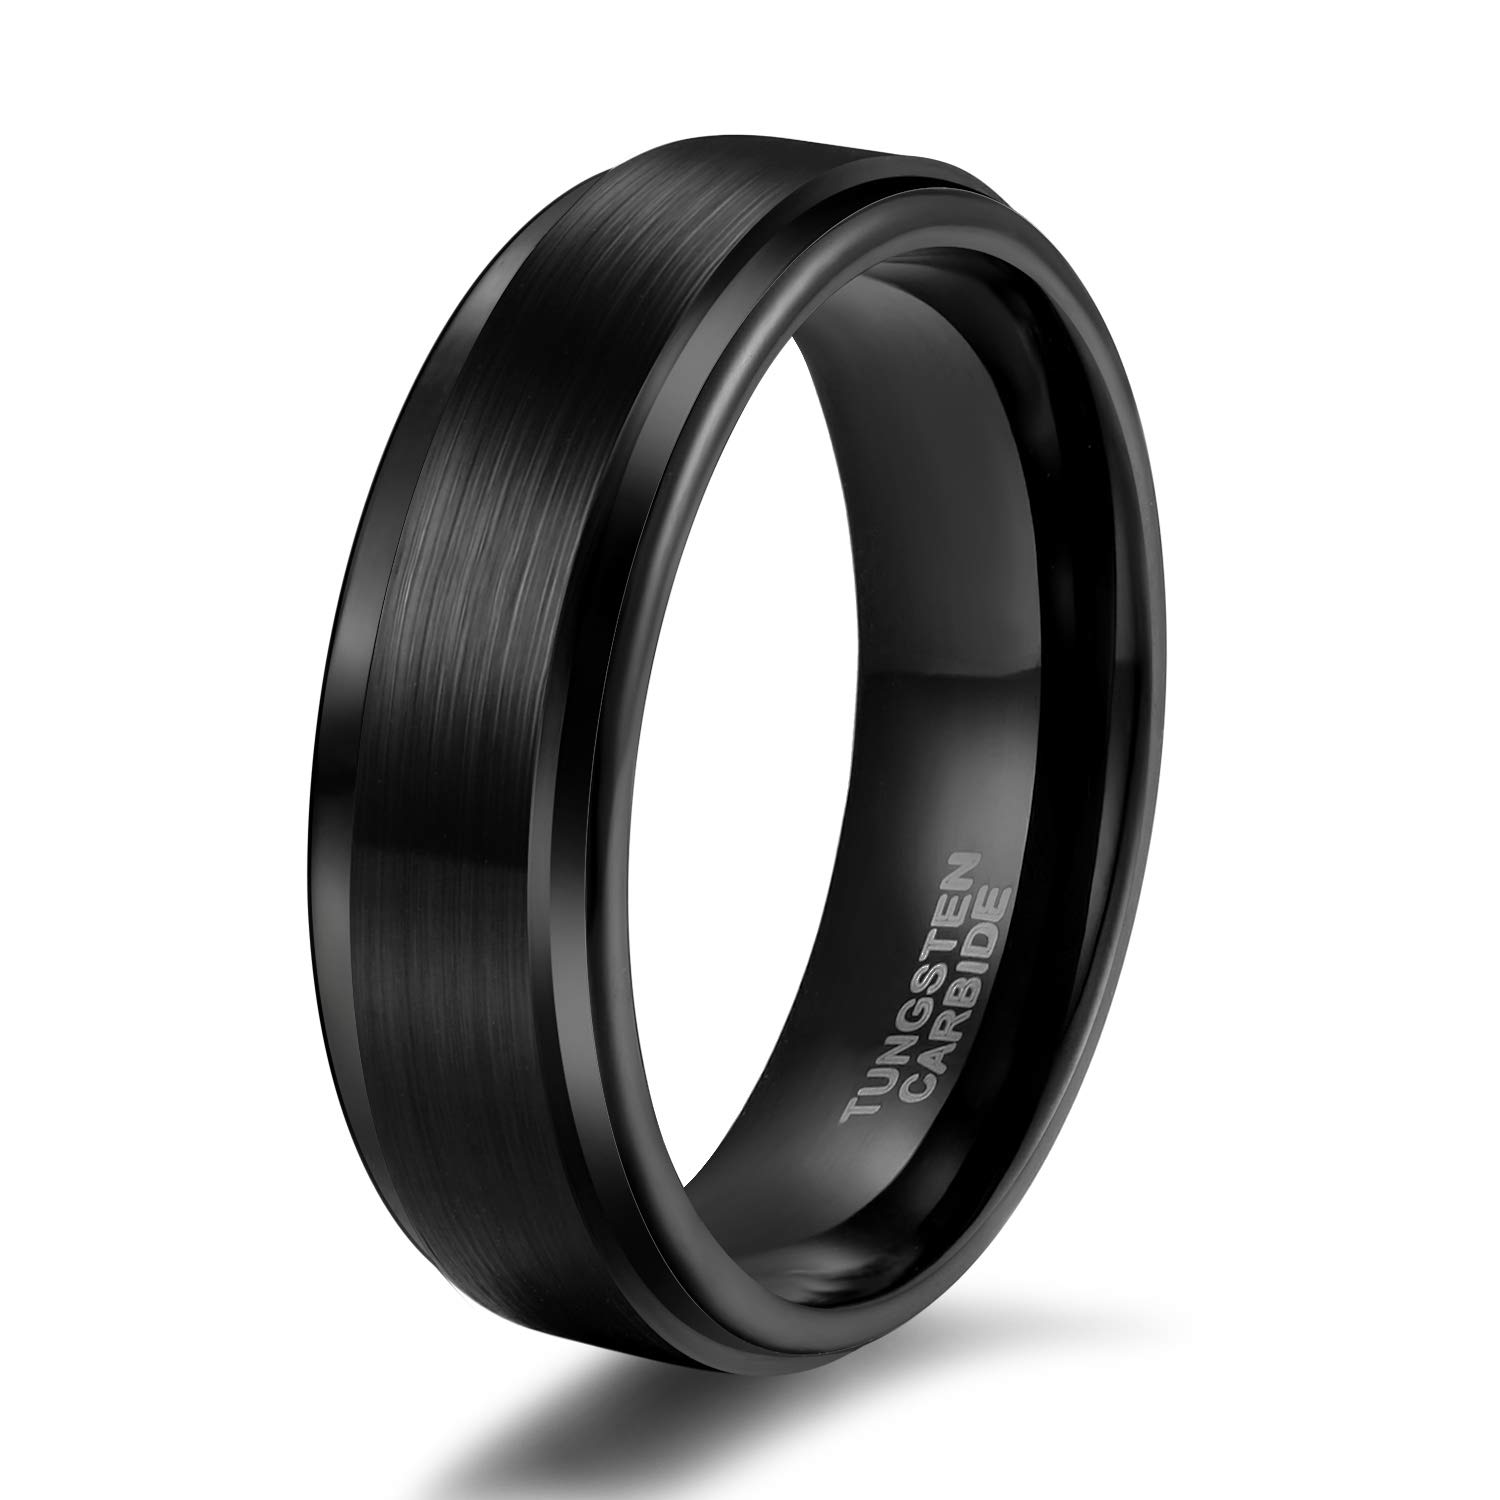 Shuremaster 6mm Black Tungsten Carbide Wedding Ring Band for Men Brushed Style Comfort Fit Size 5